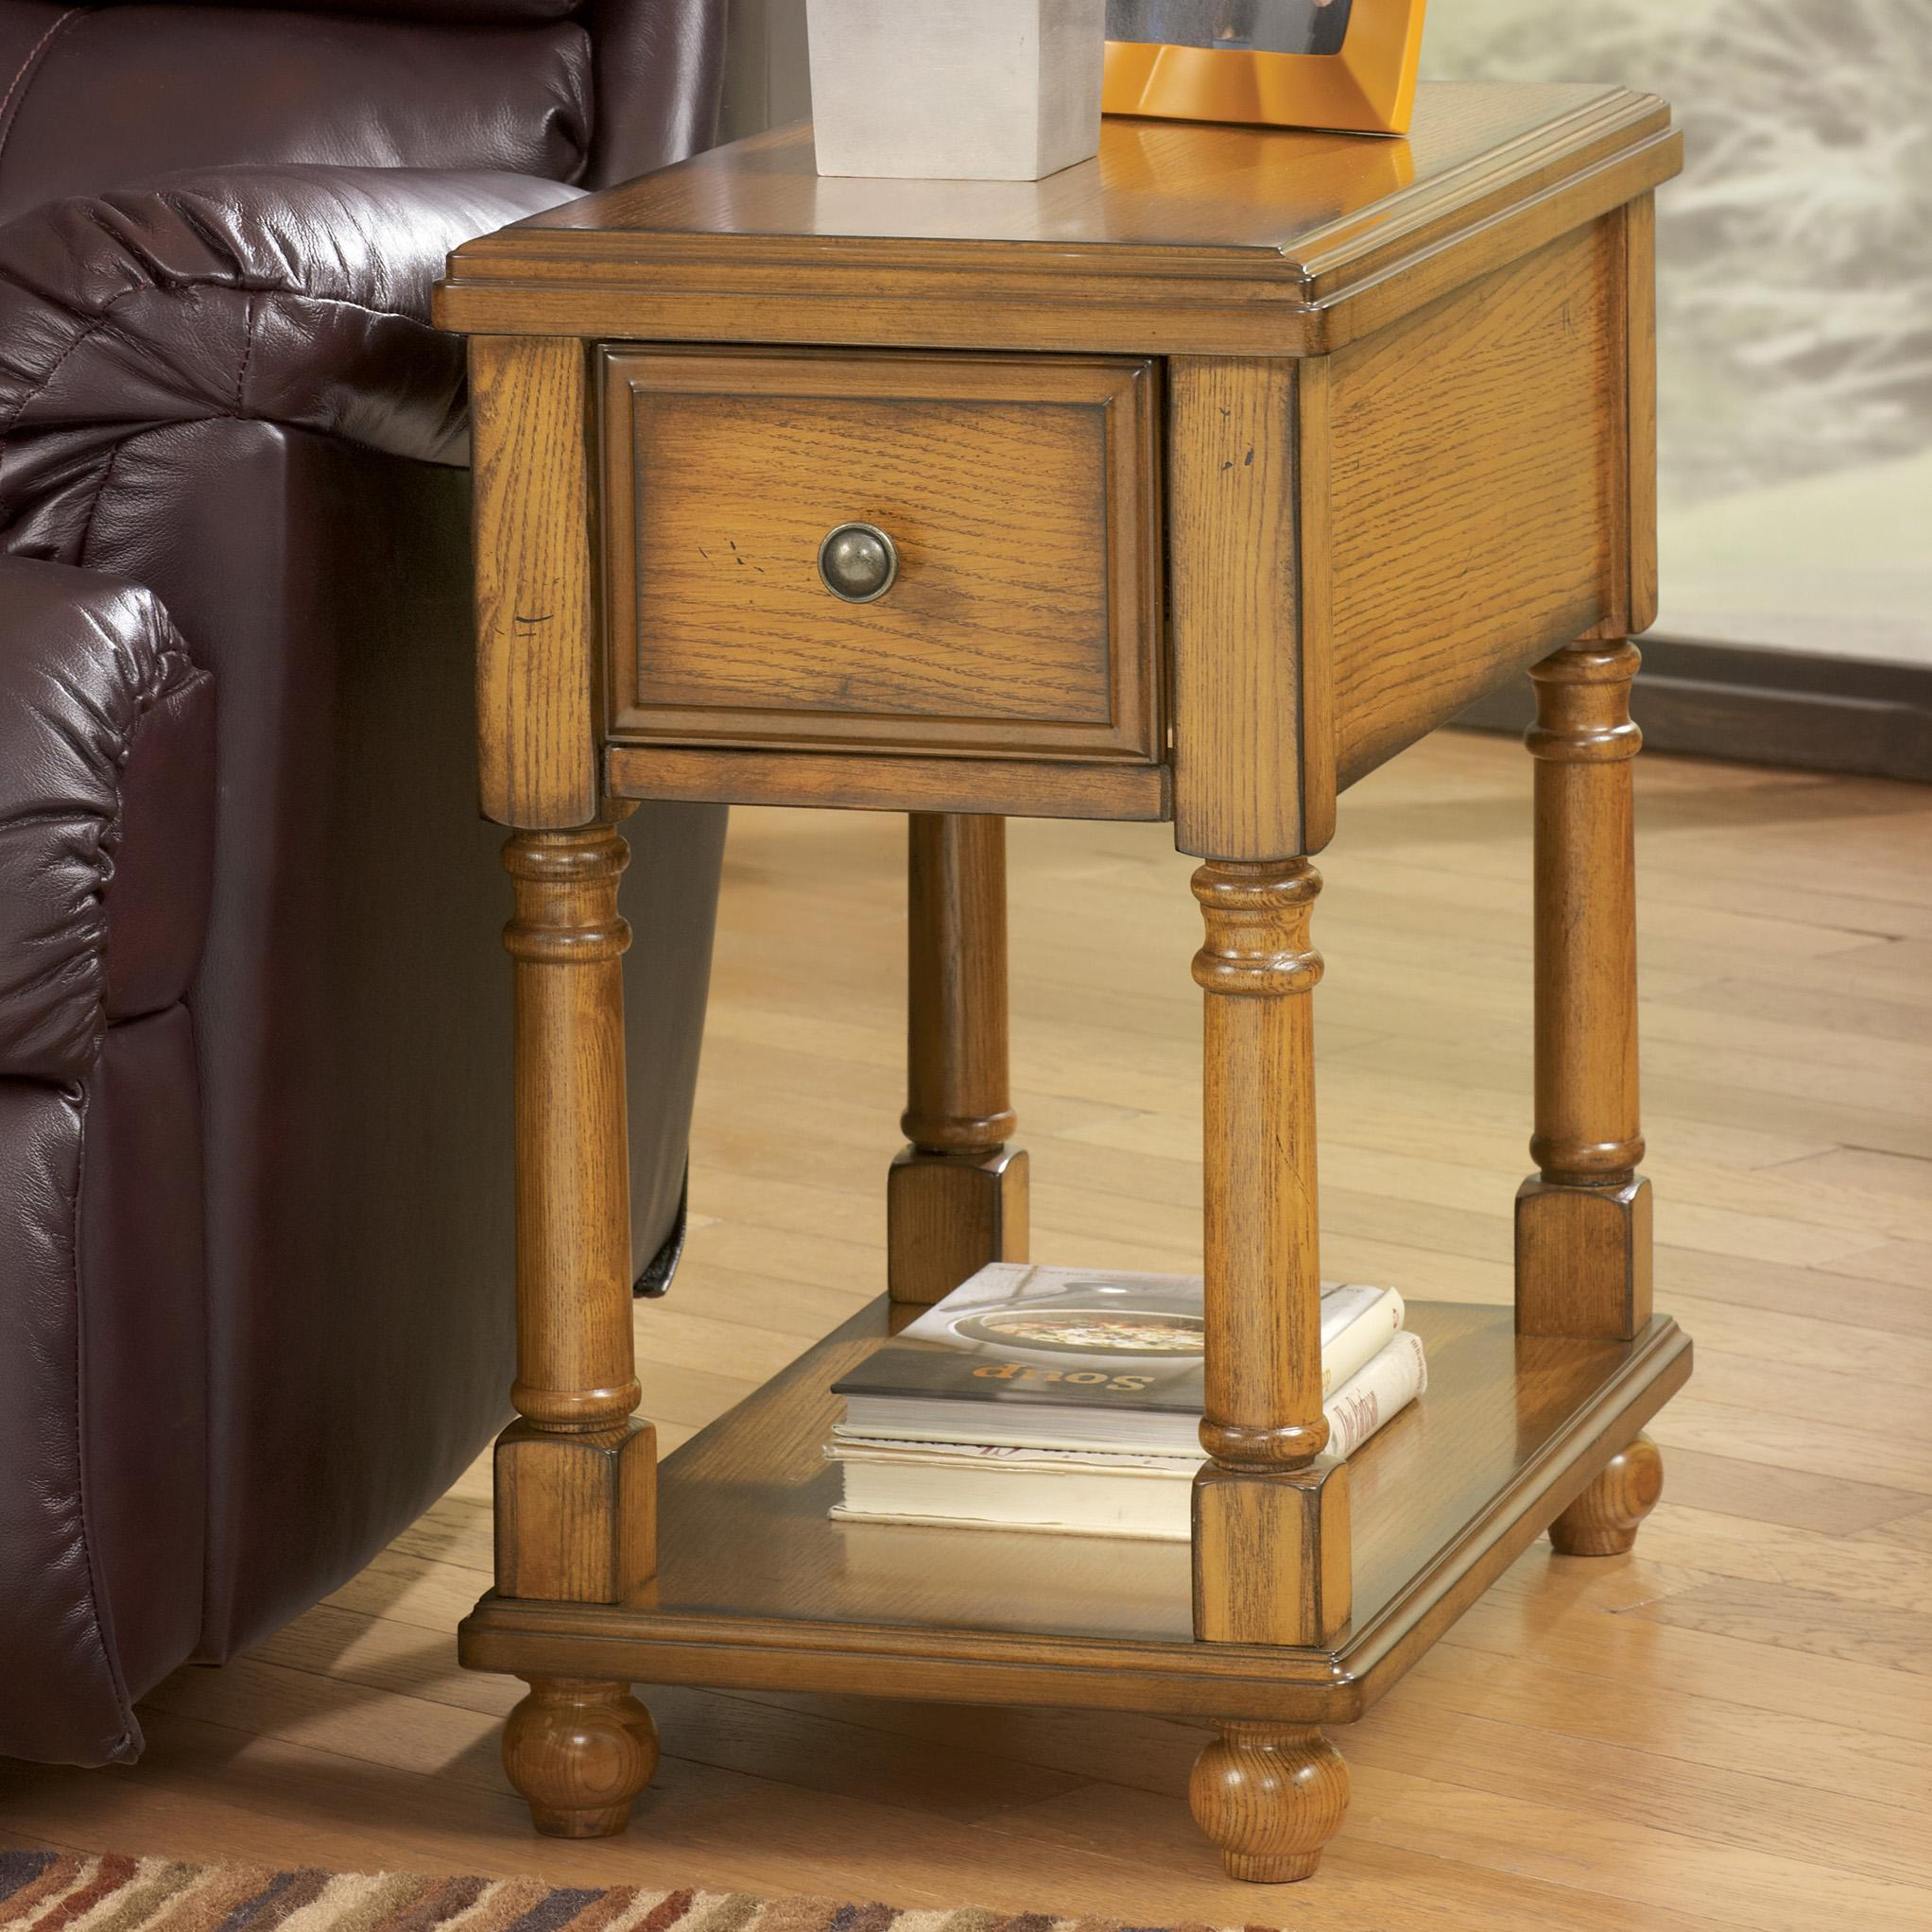 Modern Chairside Table Contemporary Brown Holfield Chairside End Table With